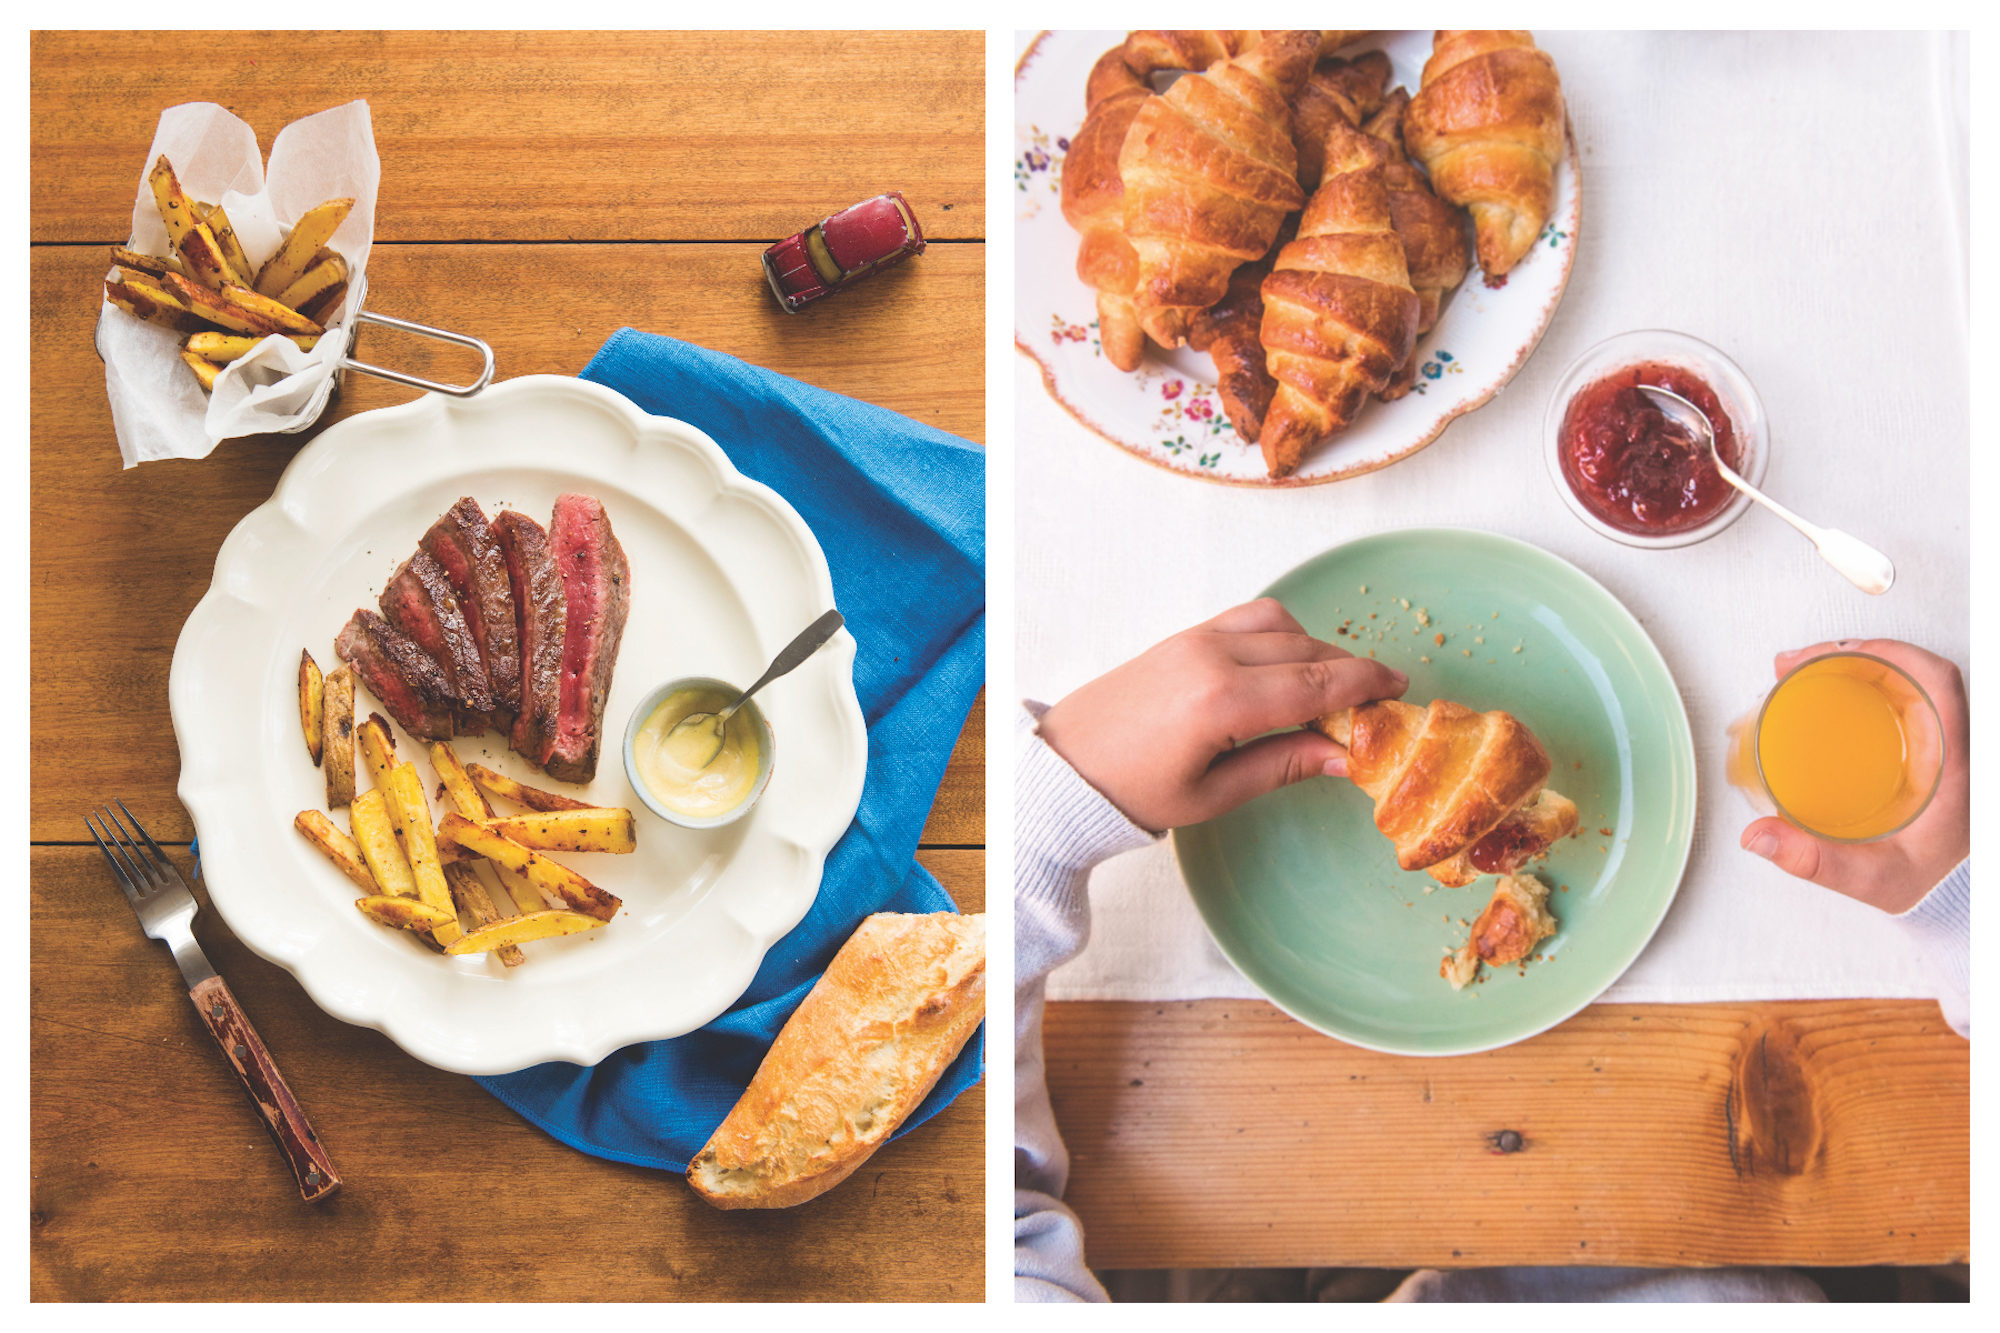 Perfectly cooked steak and frites French style in author Mardi Michels cookbook (left). Butter croissants, homemade jams and freshly-pressed orange juice (right).